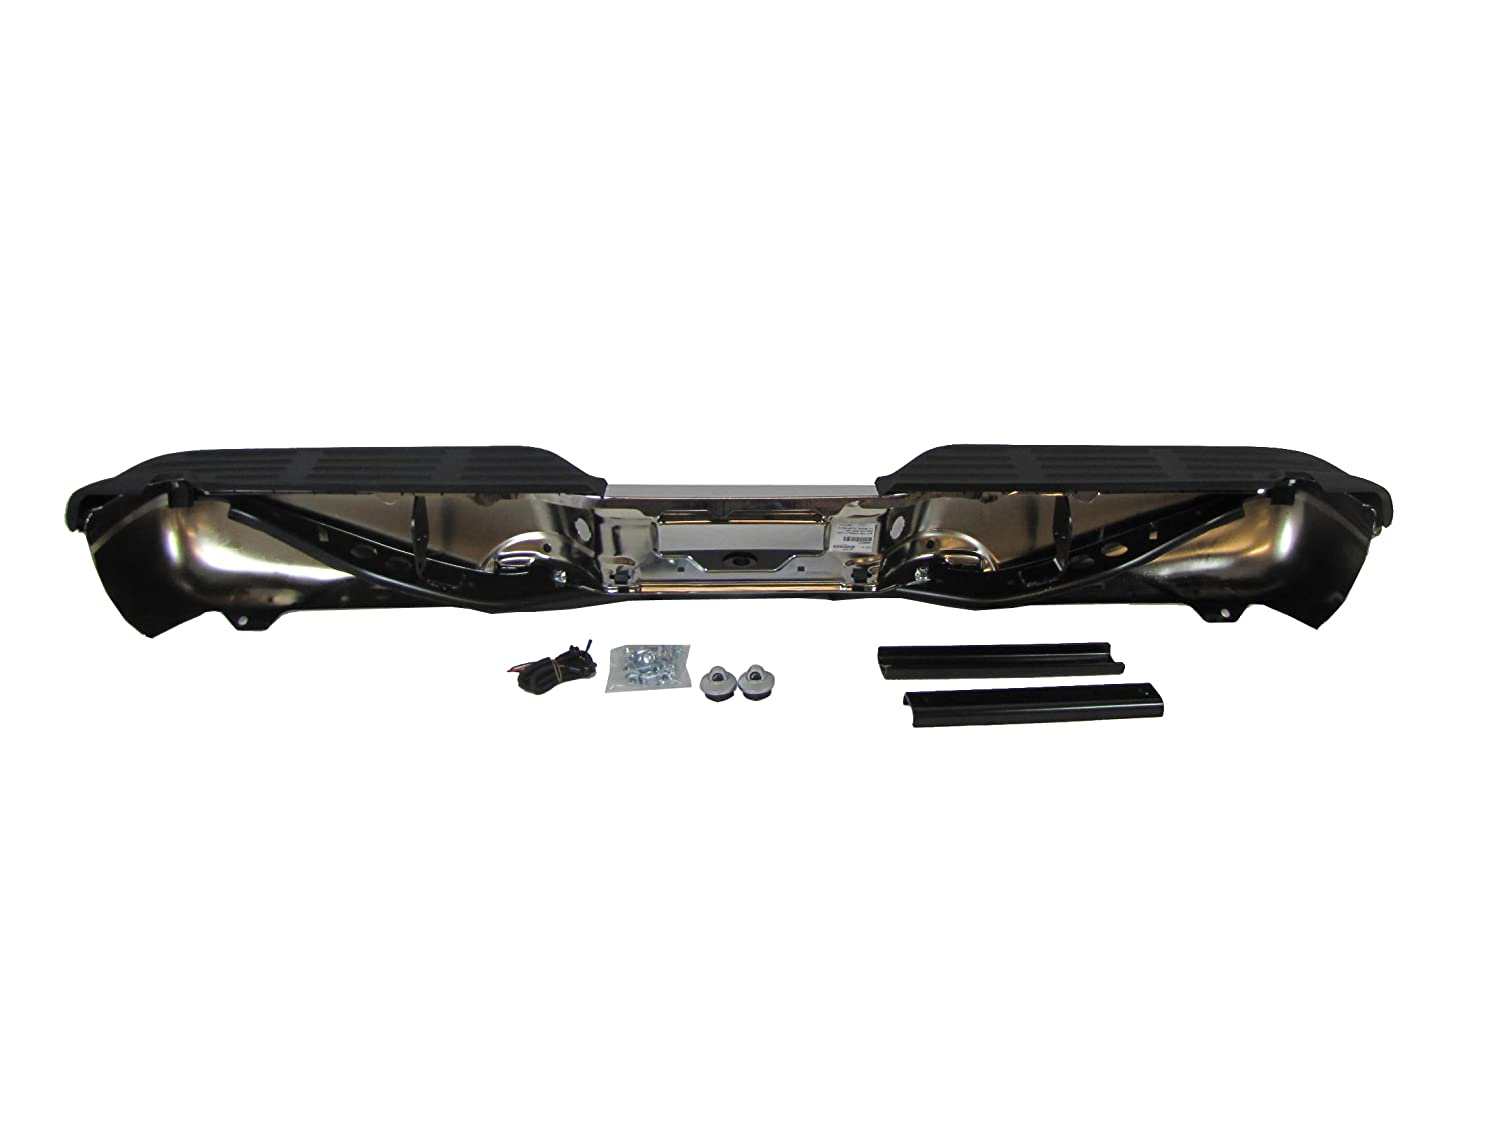 WITHOUT SENSOR HOLE 99-07 FORD SUPER DUTY F250 F350 450 550 REAR STEP BUMPER CHROME FULL ASSY WITH BRACKETS WITH HITCH WITH LICENSE LAMP /& CABLE OEM TYPE FO1101141 WITH PADS